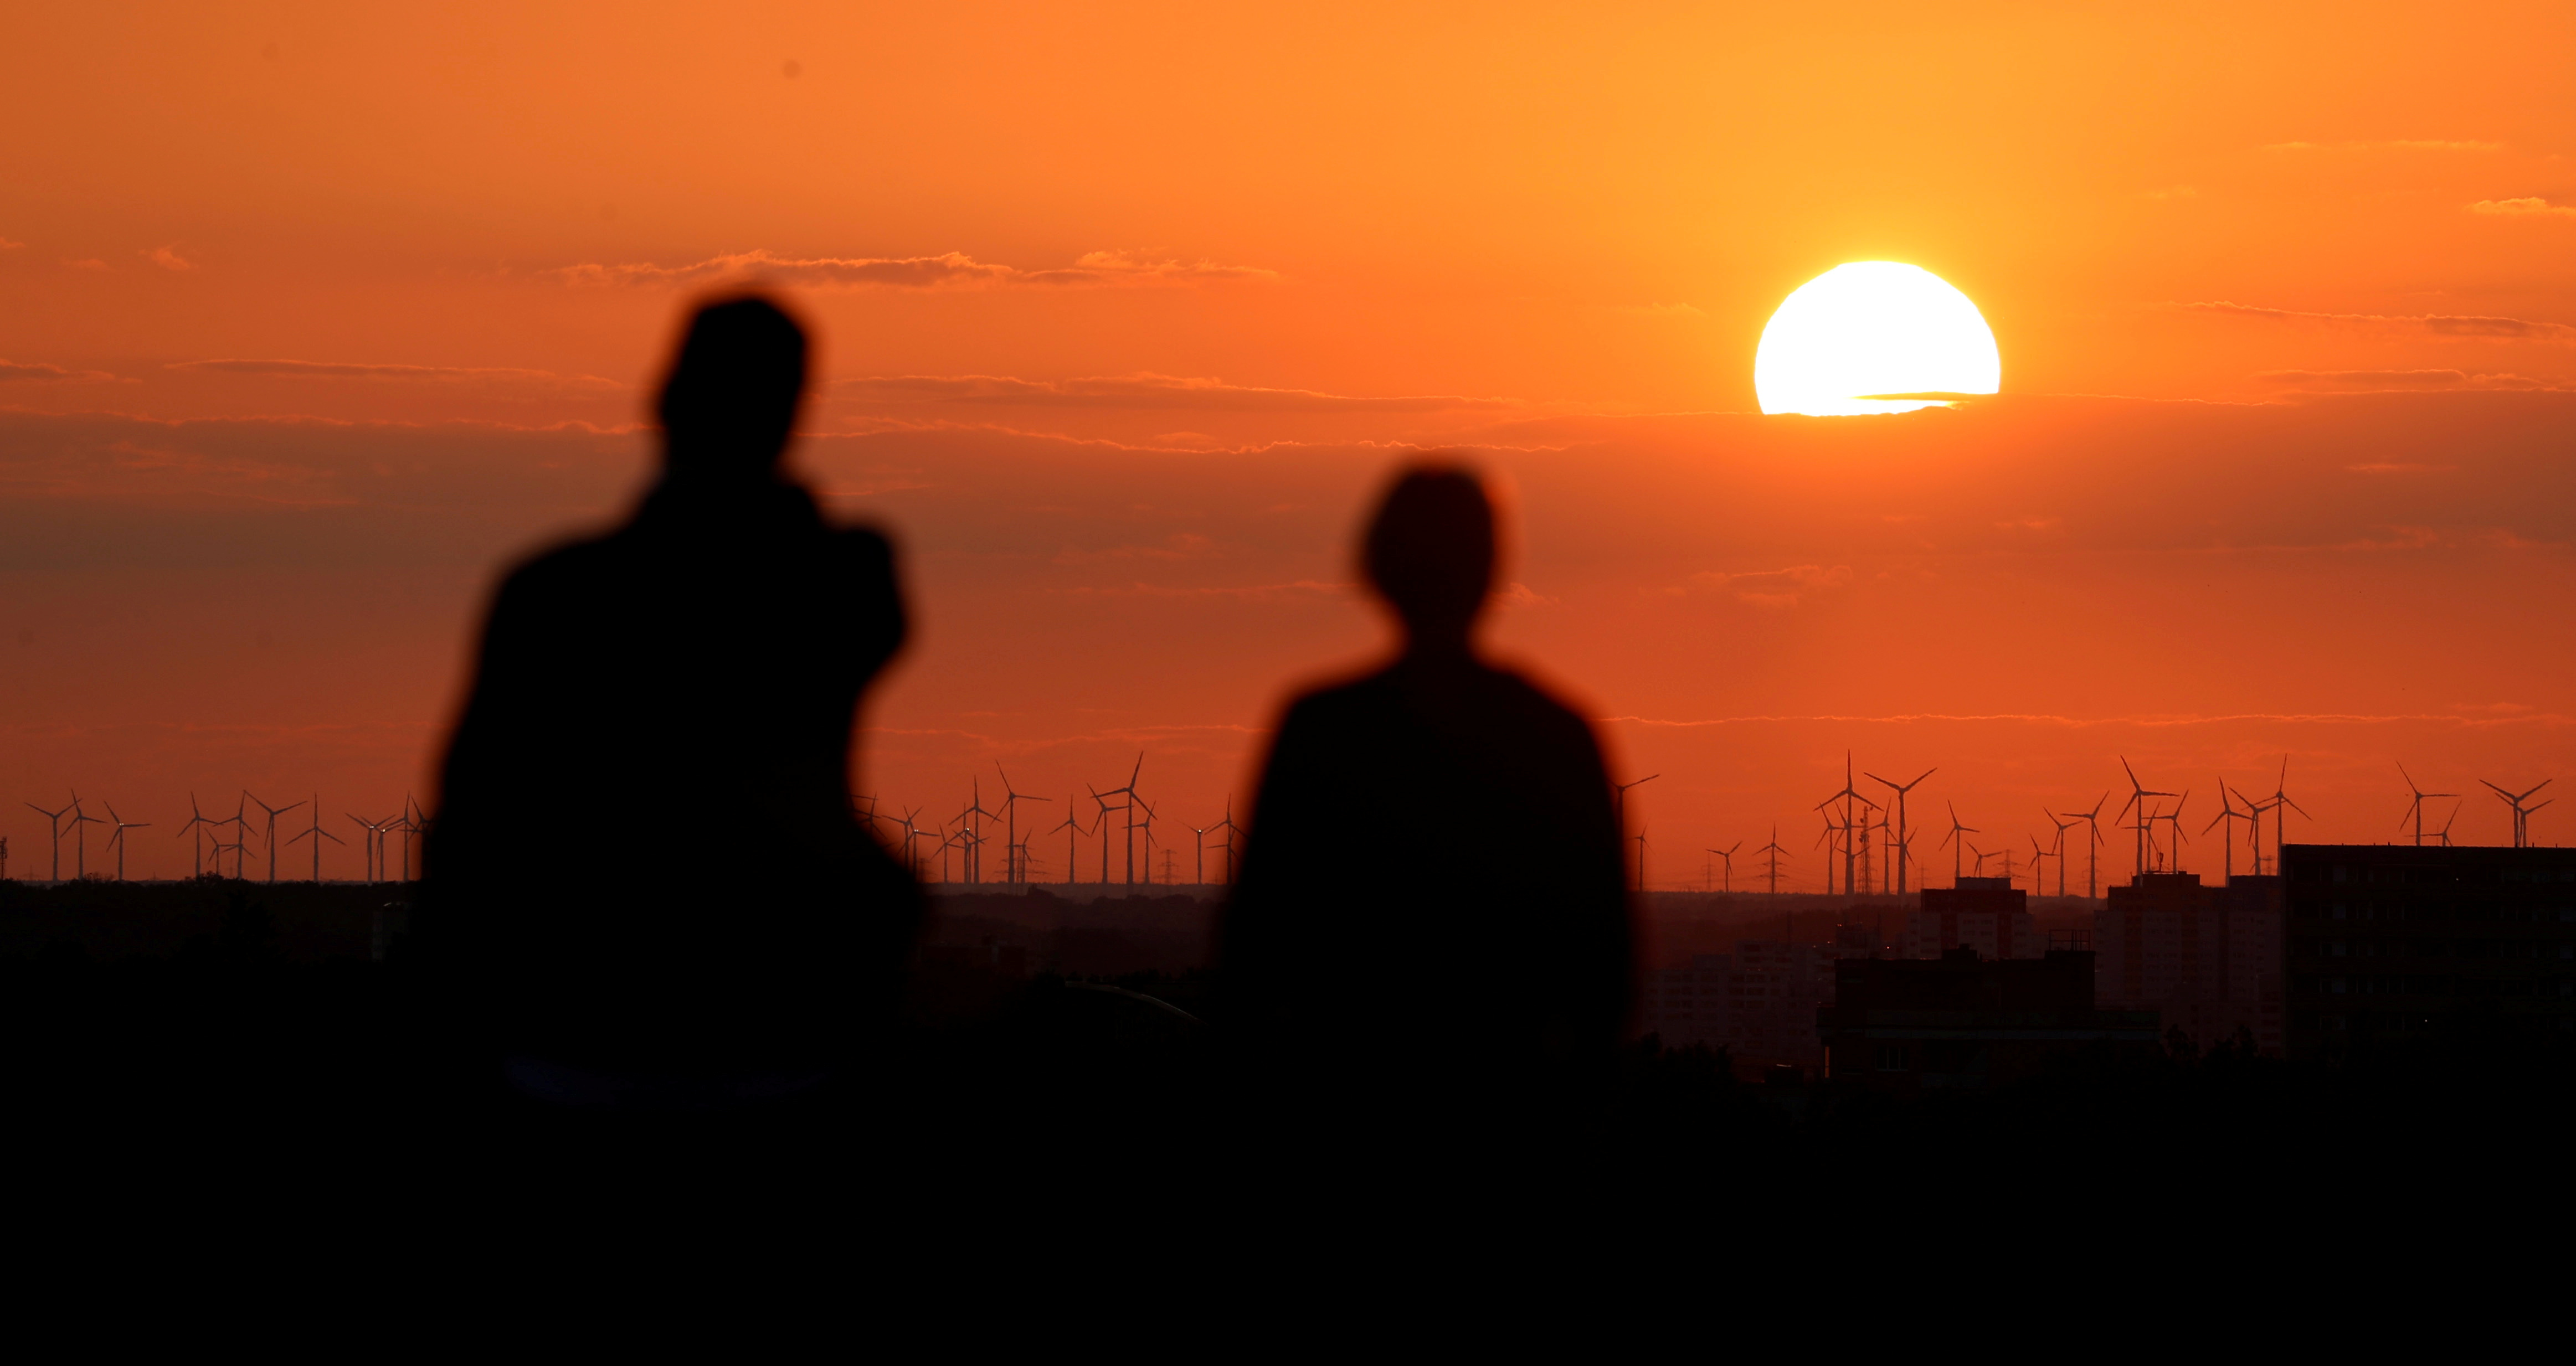 People watch on top of the Drachenberg hill power-generating windmill turbines during sunset in Berlin, Germany, August 19, 2019. REUTERS/Fabrizio Bensch